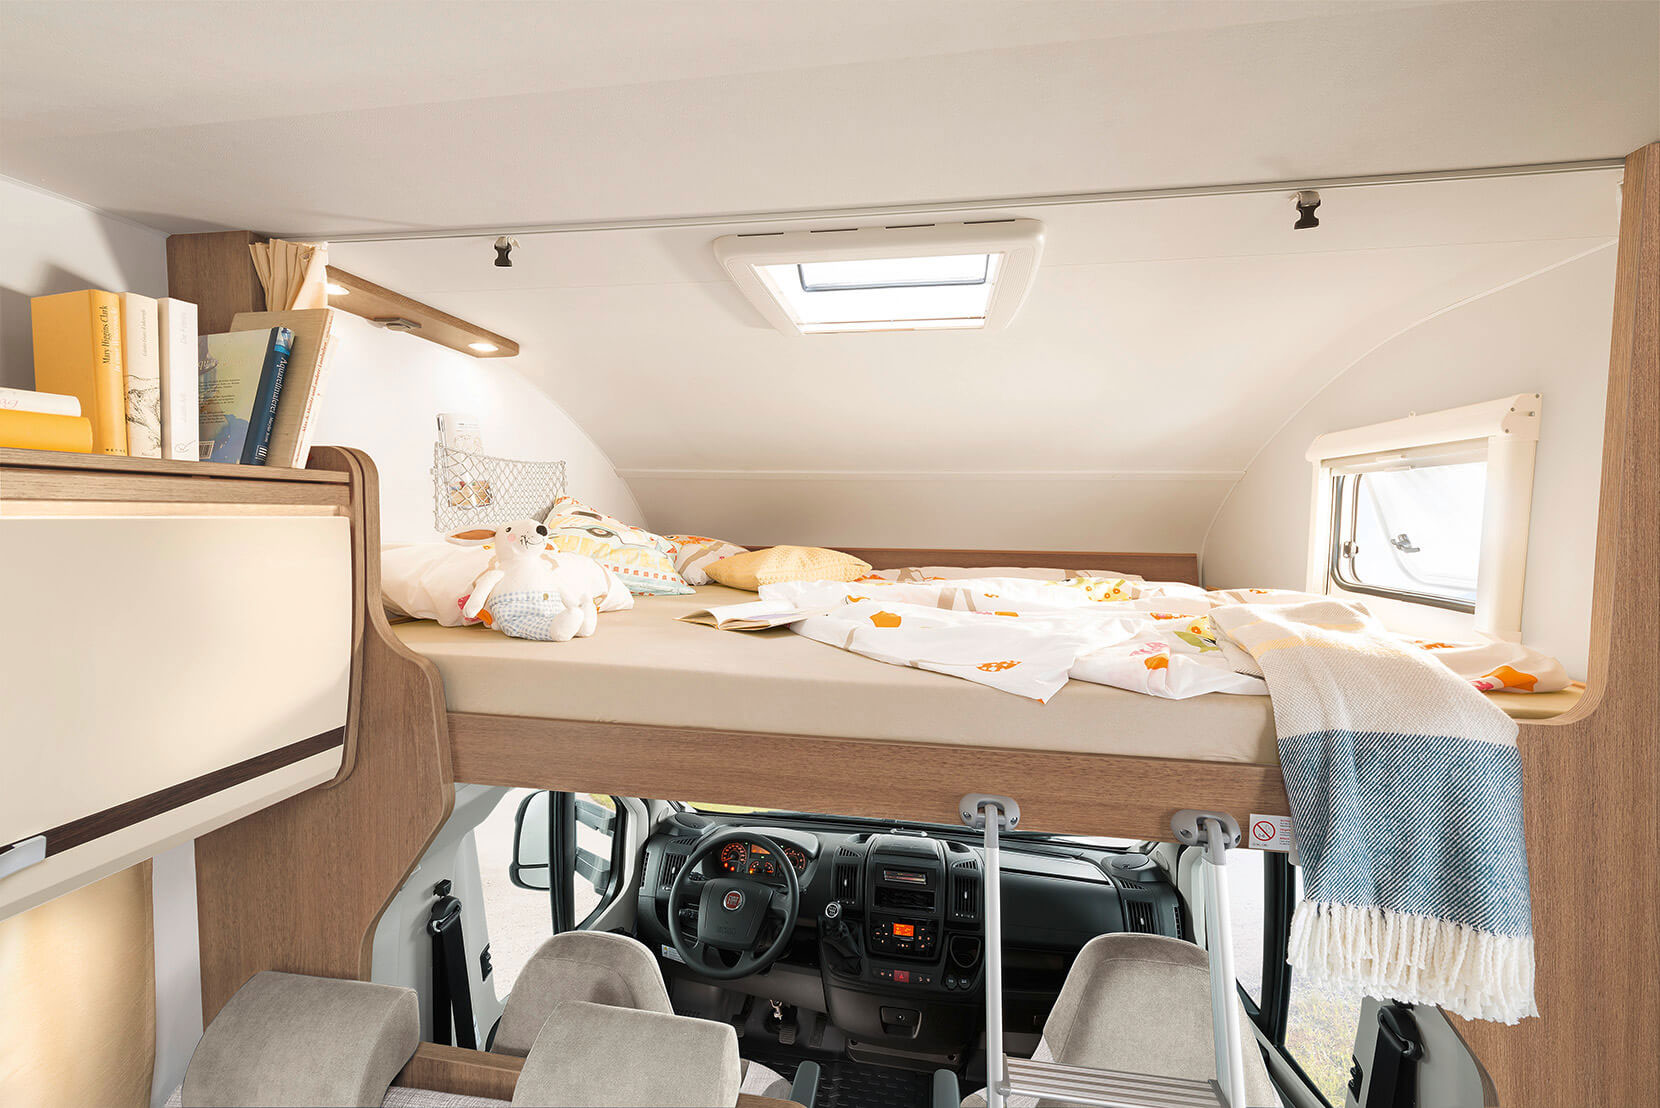 The huge overcab bed (210 x 165 cm) is loved by children and adults alike